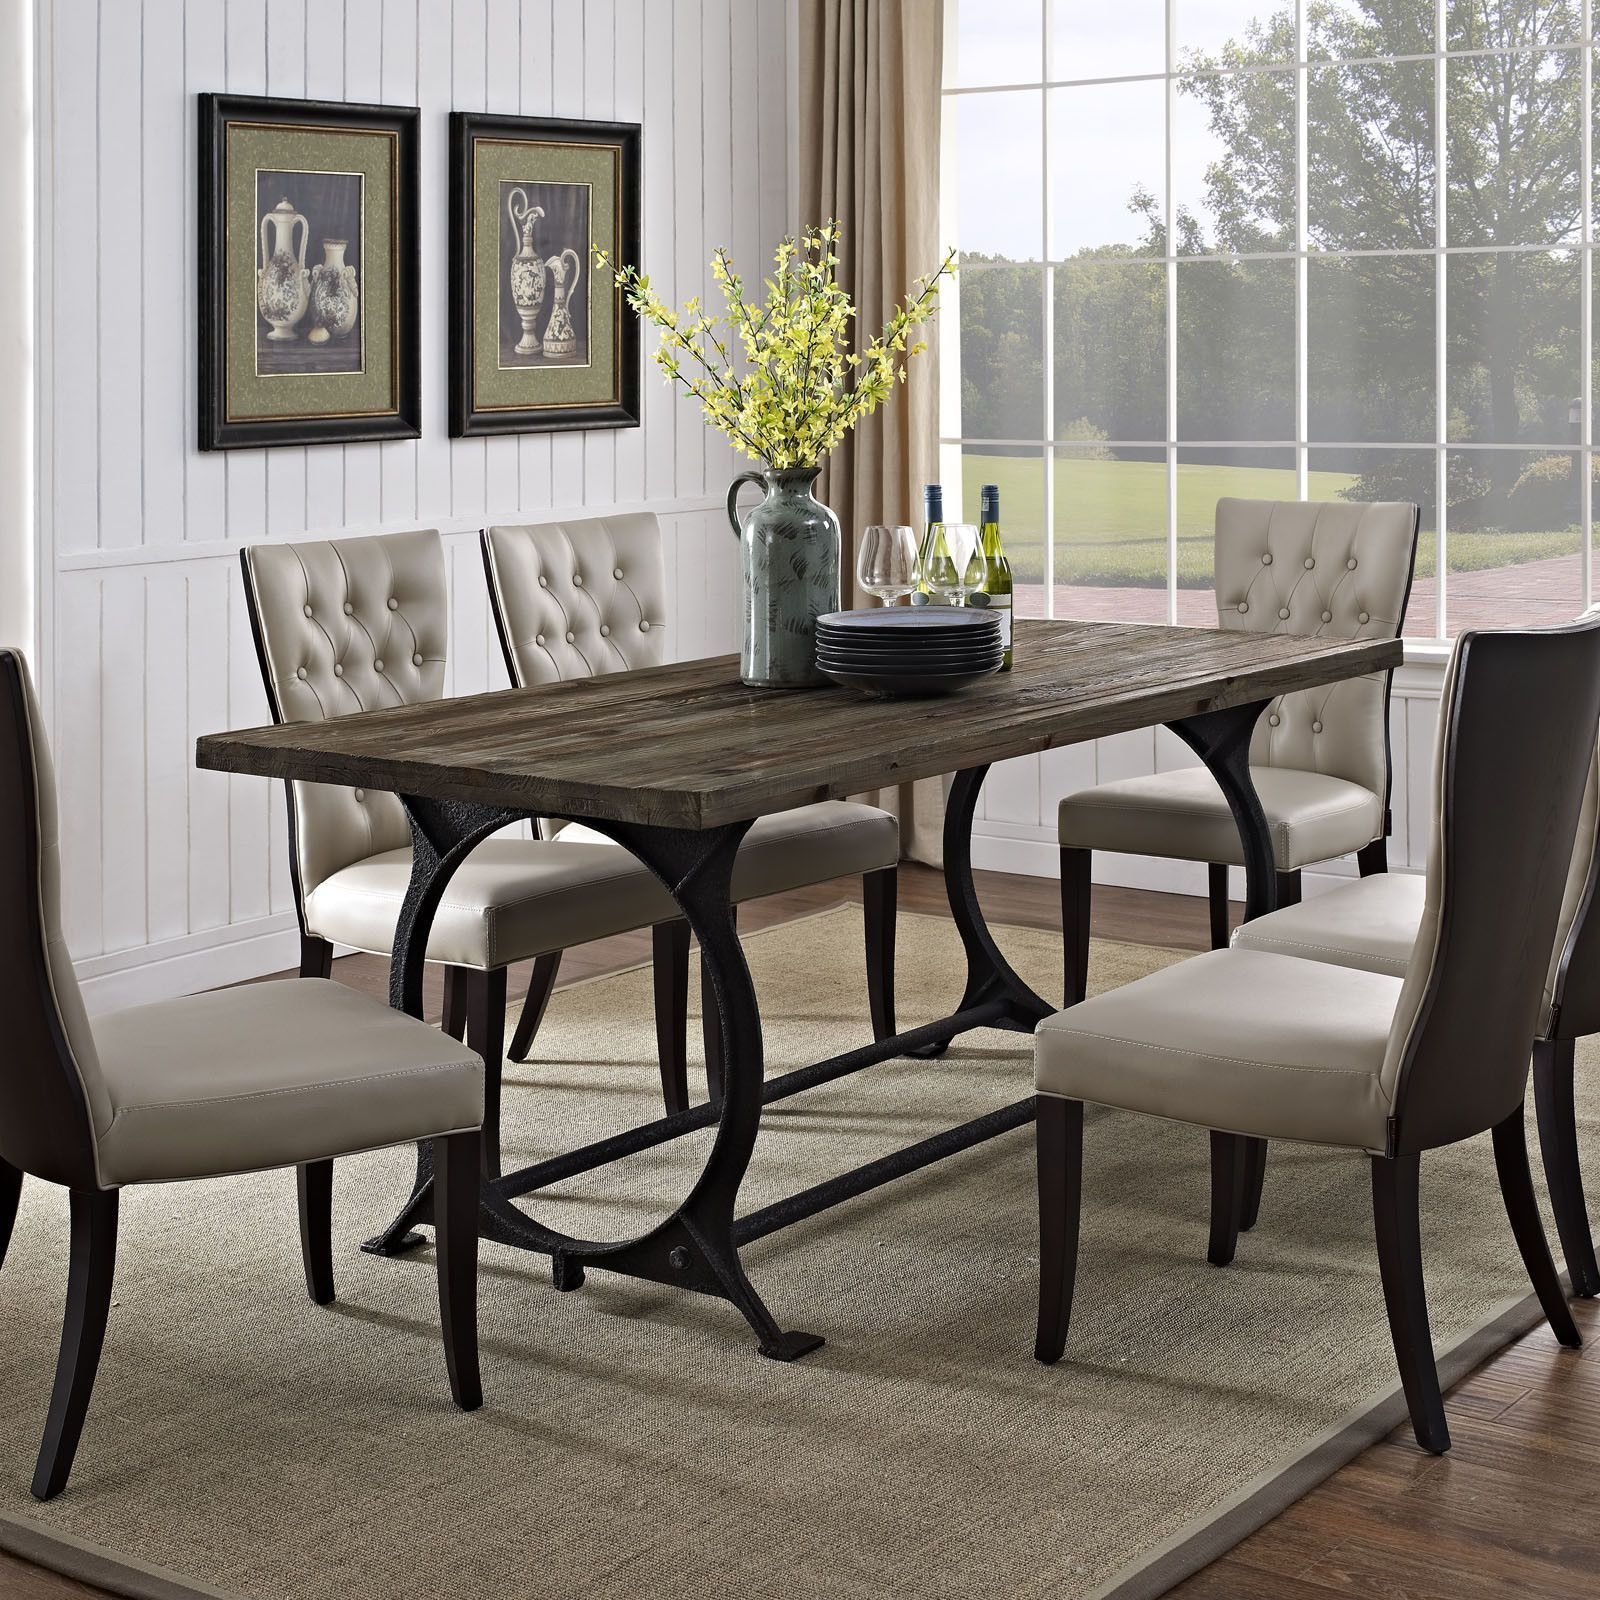 Modern Dining Table, Wood And Iron Dining Room Set